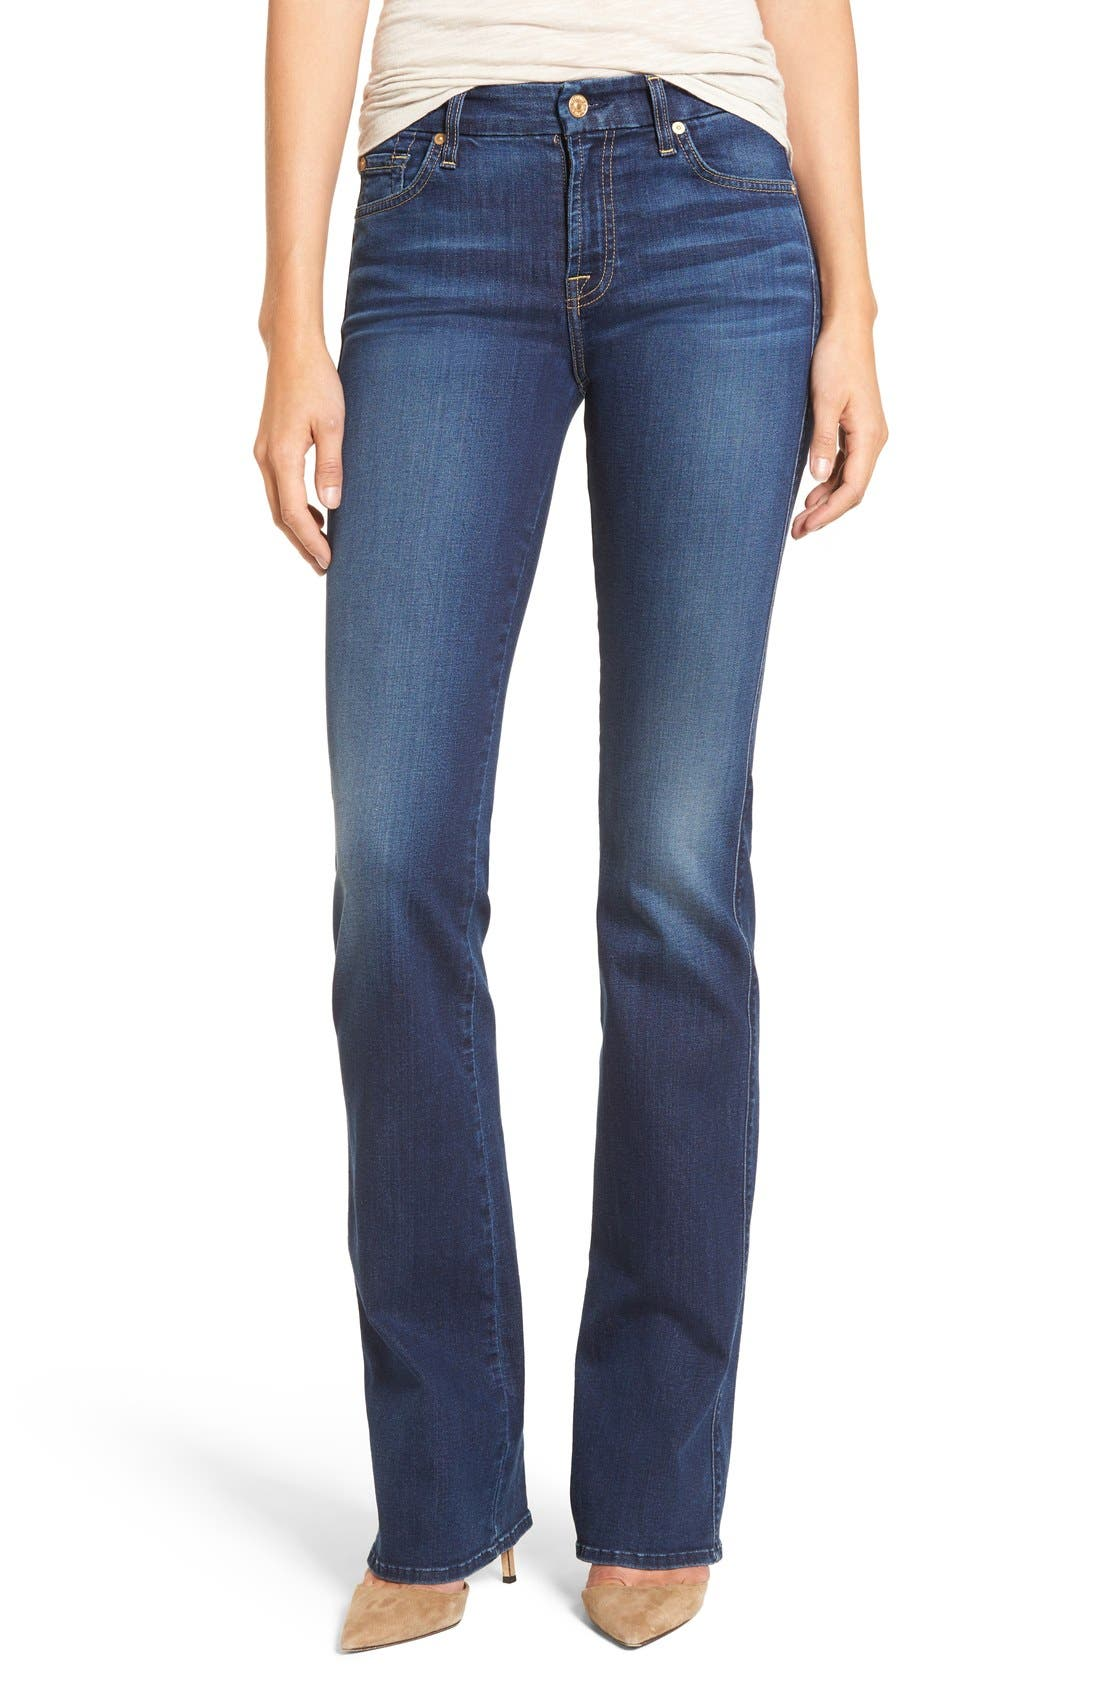 b(air) - Kimmie Bootcut Jeans,                         Main,                         color, Duchess